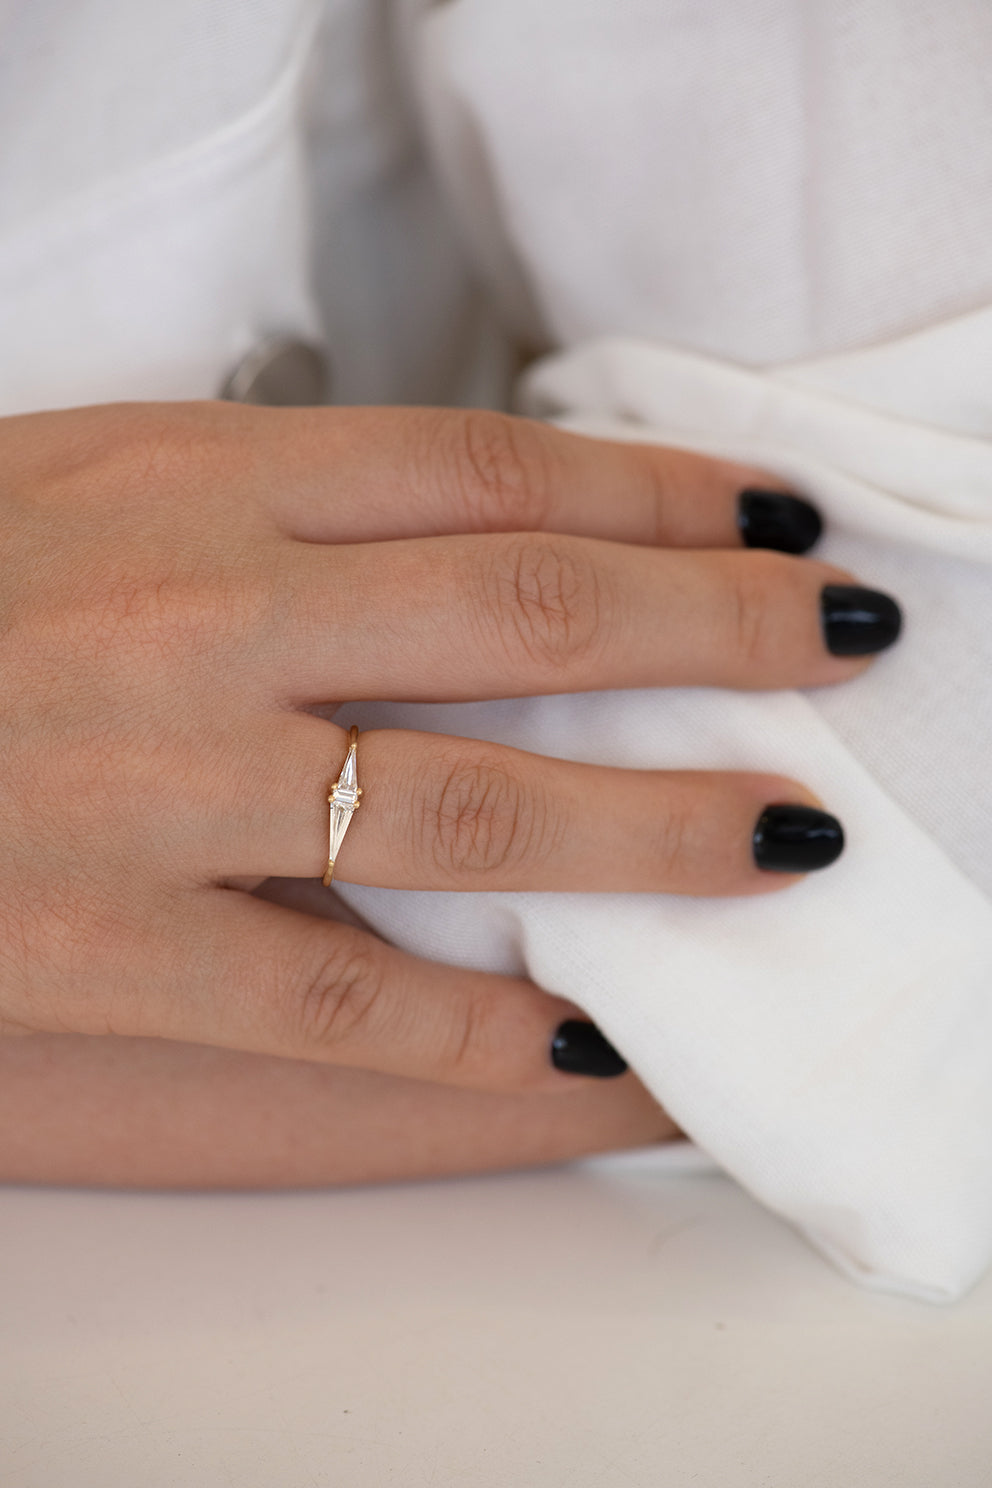 Asymmetrical Engagement Ring - Arrow Diamond Ring on Hand